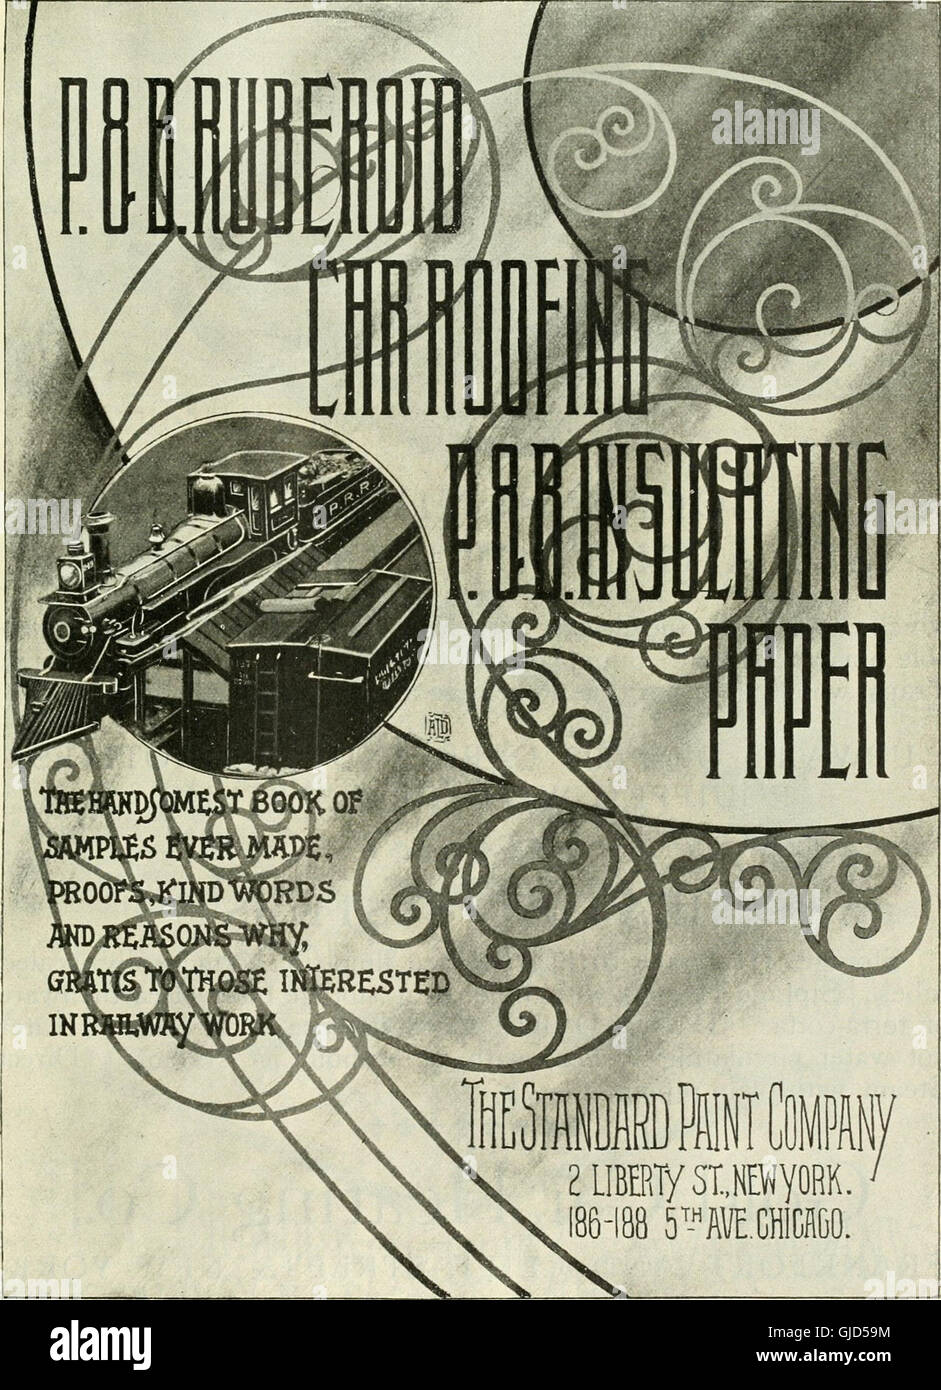 Locomotive engineering - a practical journal of railway motive power and rolling stock (1895) Stock Photo